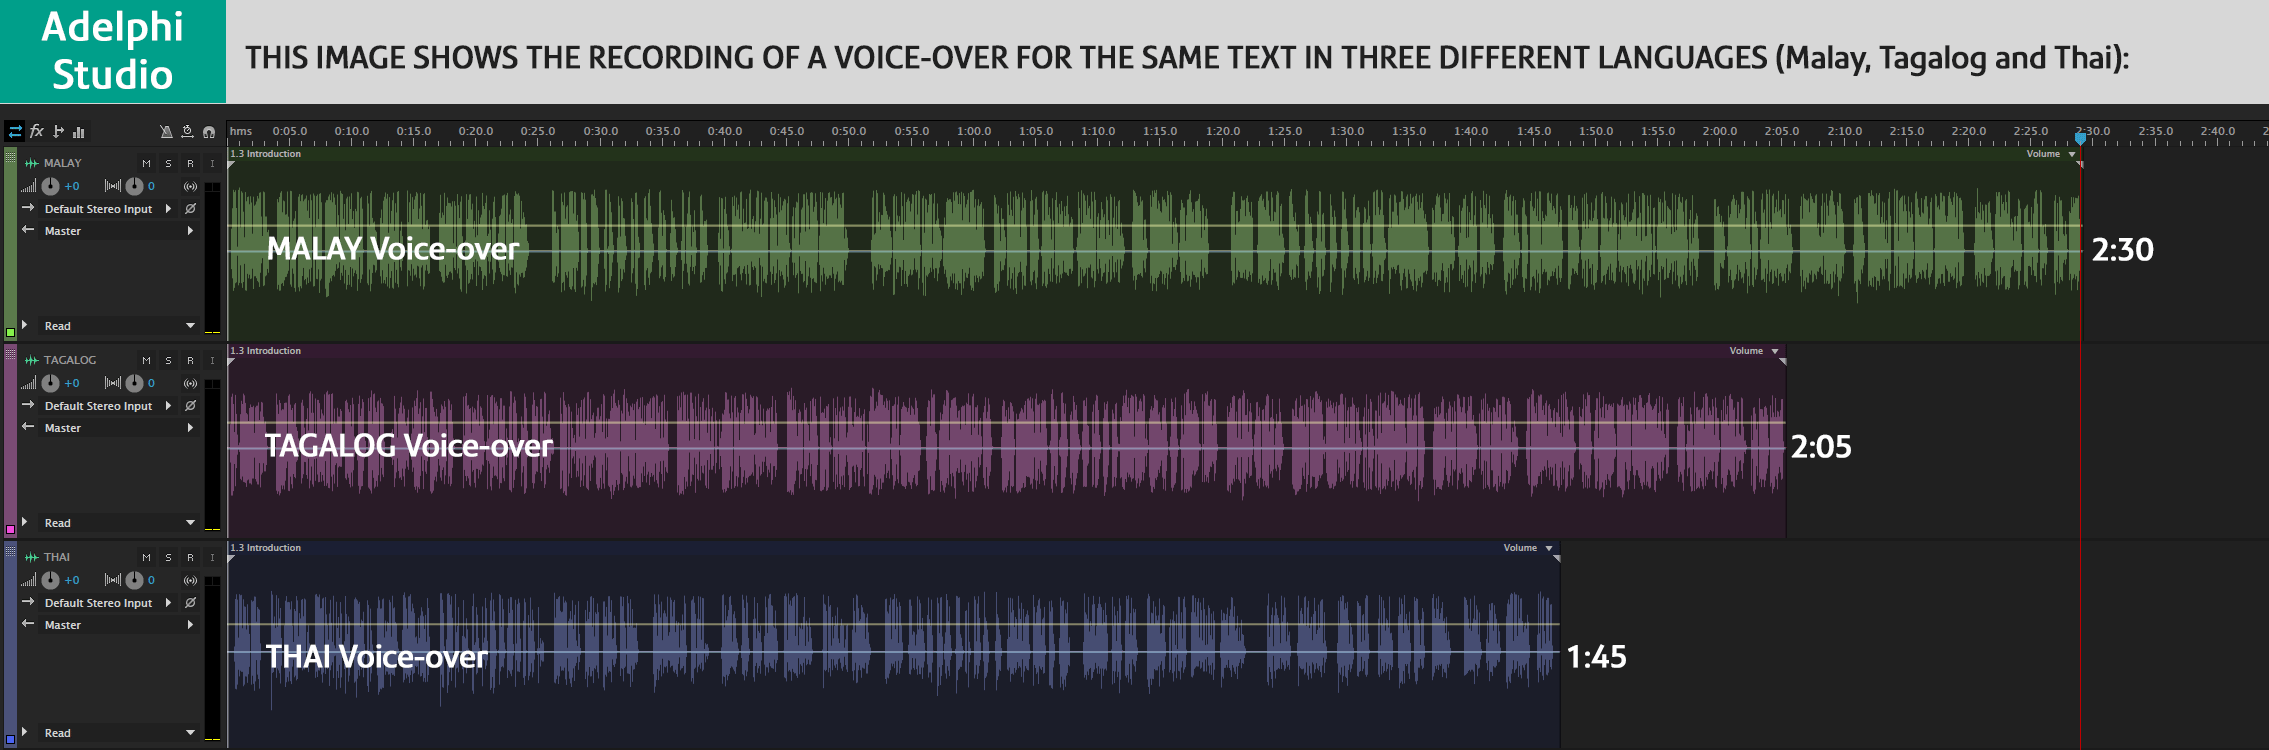 voice samples